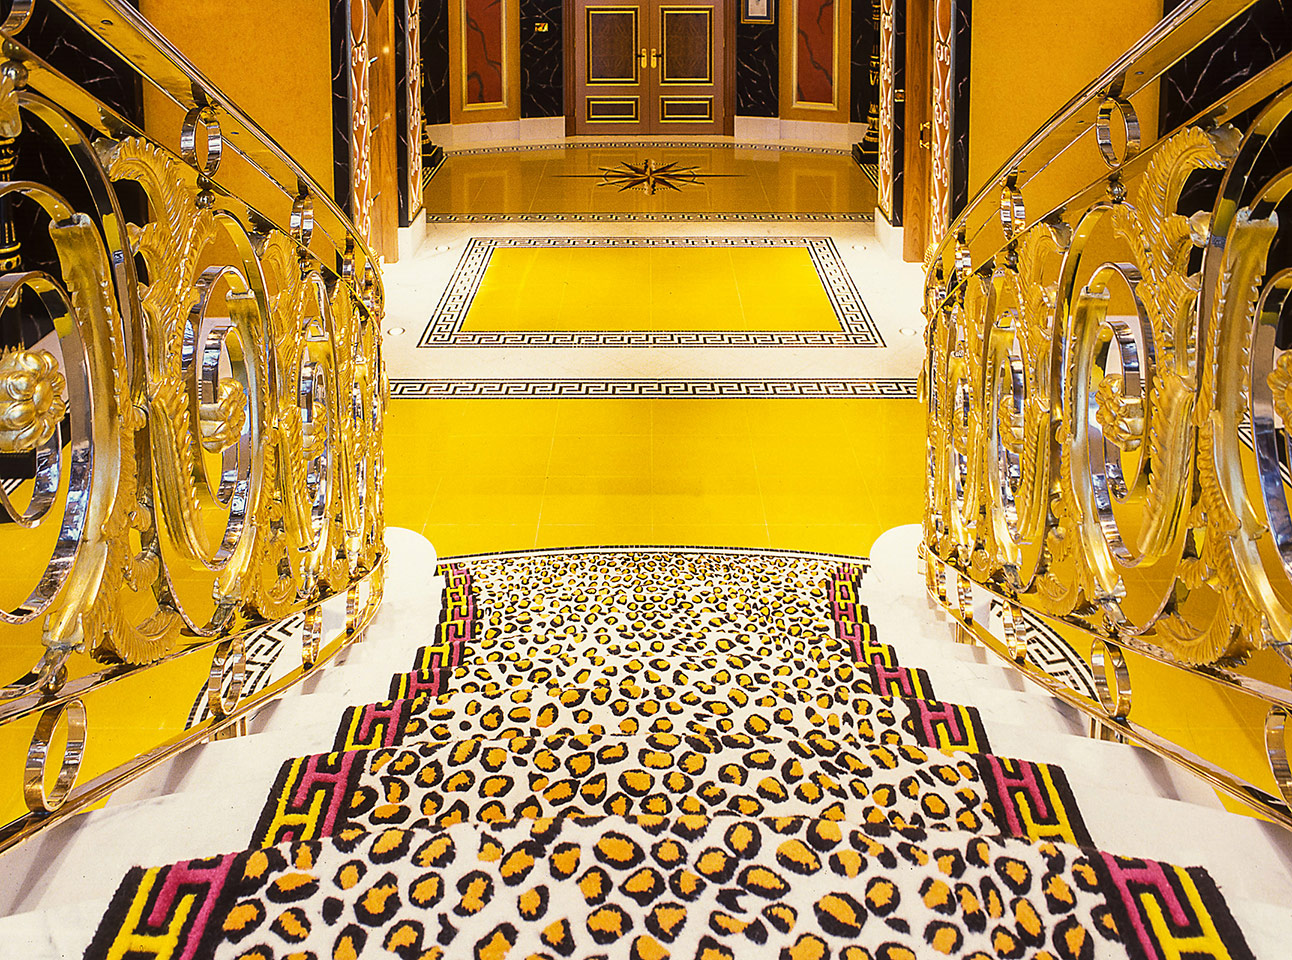 Burj Al Arab Architecture Interior Photography: burj al arab architecture